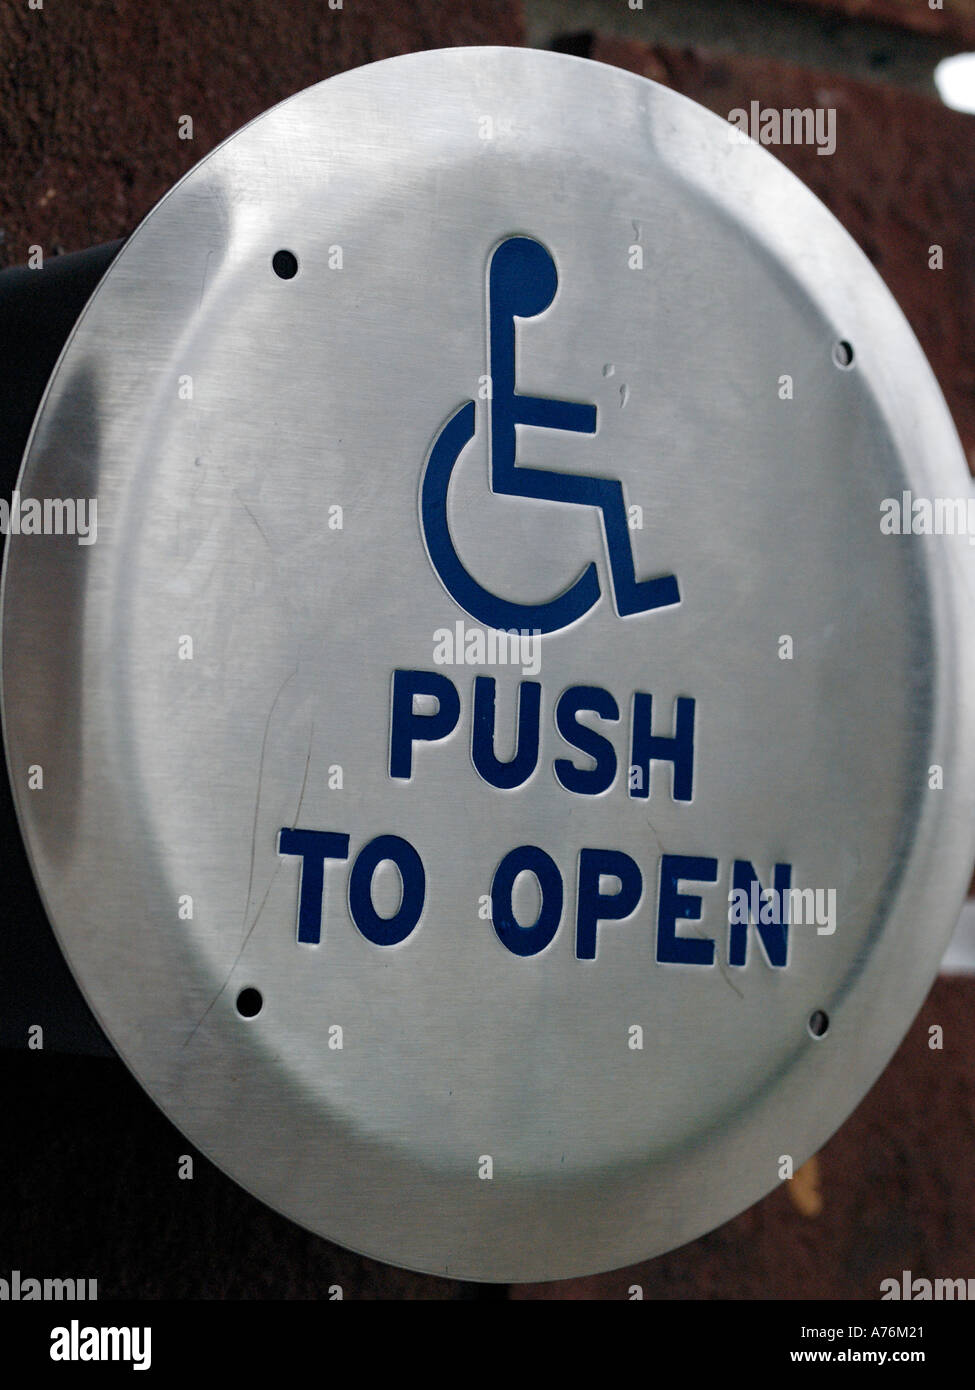 Activation button for handicapped automatic door opener at a public eductional institution Closeup detail of symbol & Automatic Door Symbol Stock Photos \u0026 Automatic Door Symbol Stock ...